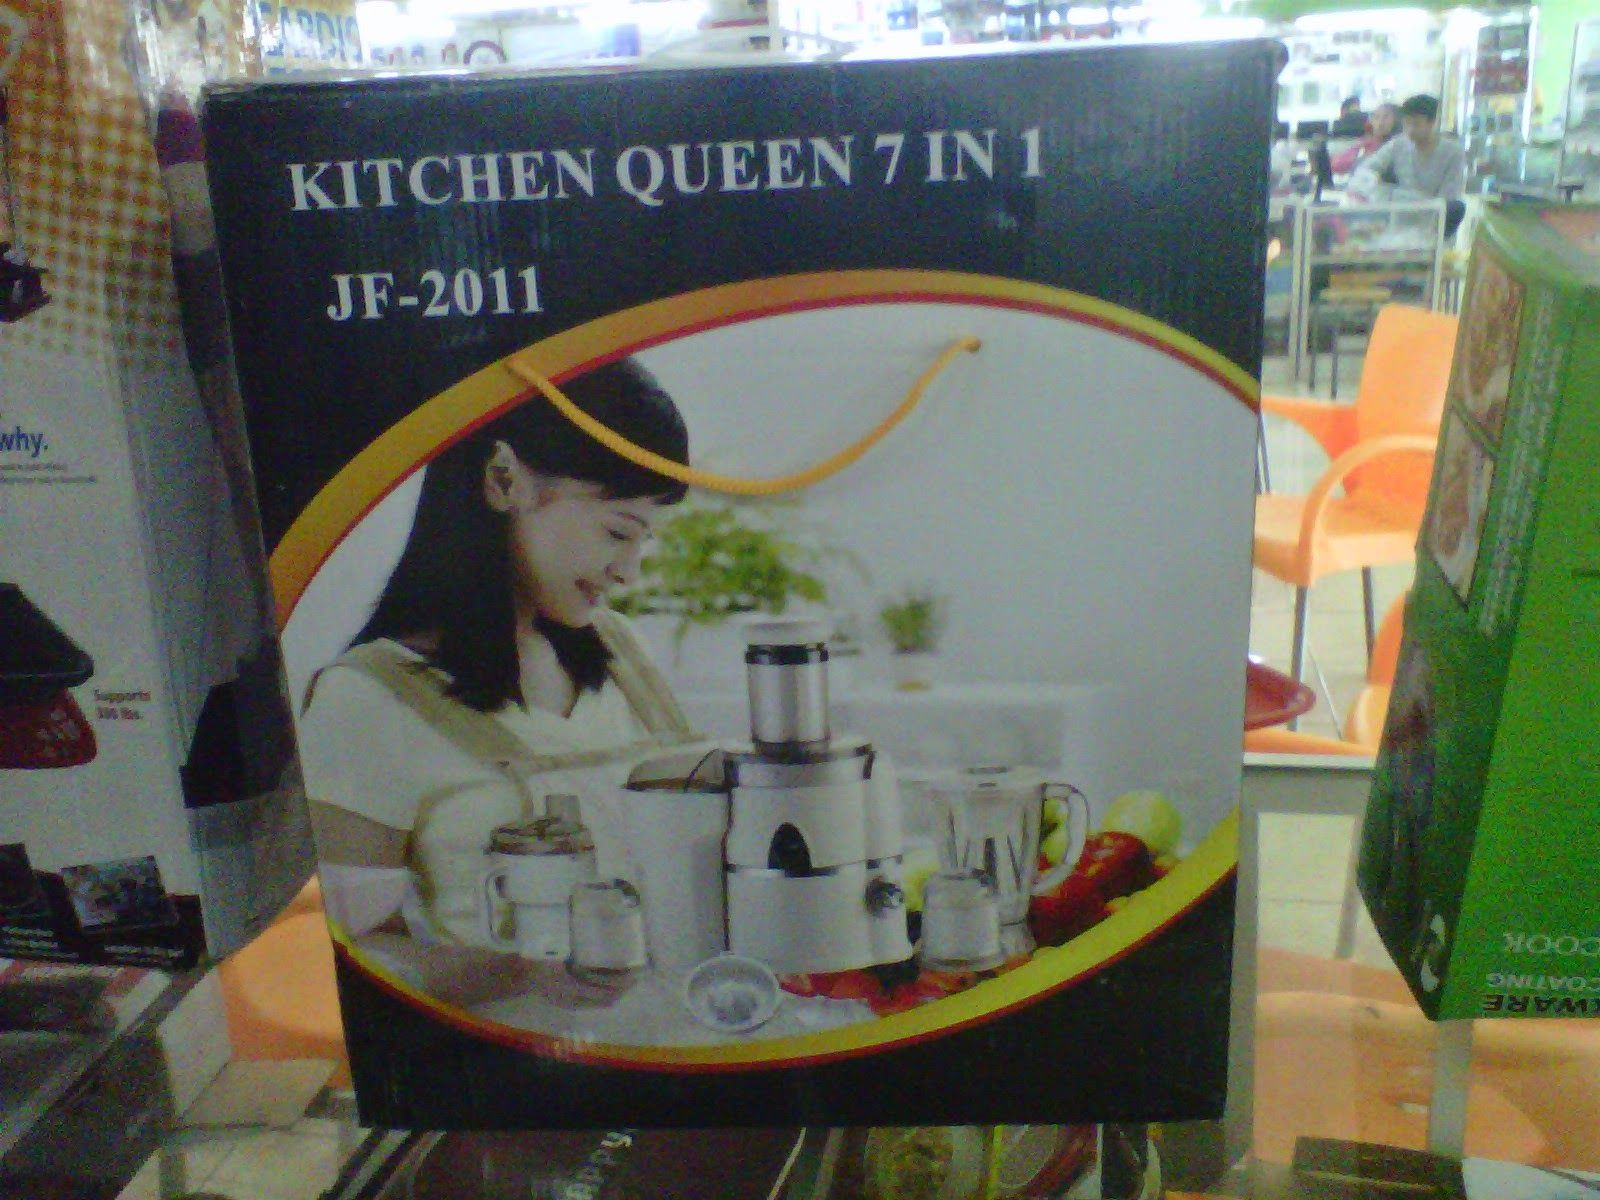 Bg Homeshoping Magelang Kitchen Queen 7 In 1 Jf 2011 Multifungsi Oxone Ox 929 Onion Ampamp Salad Slicer